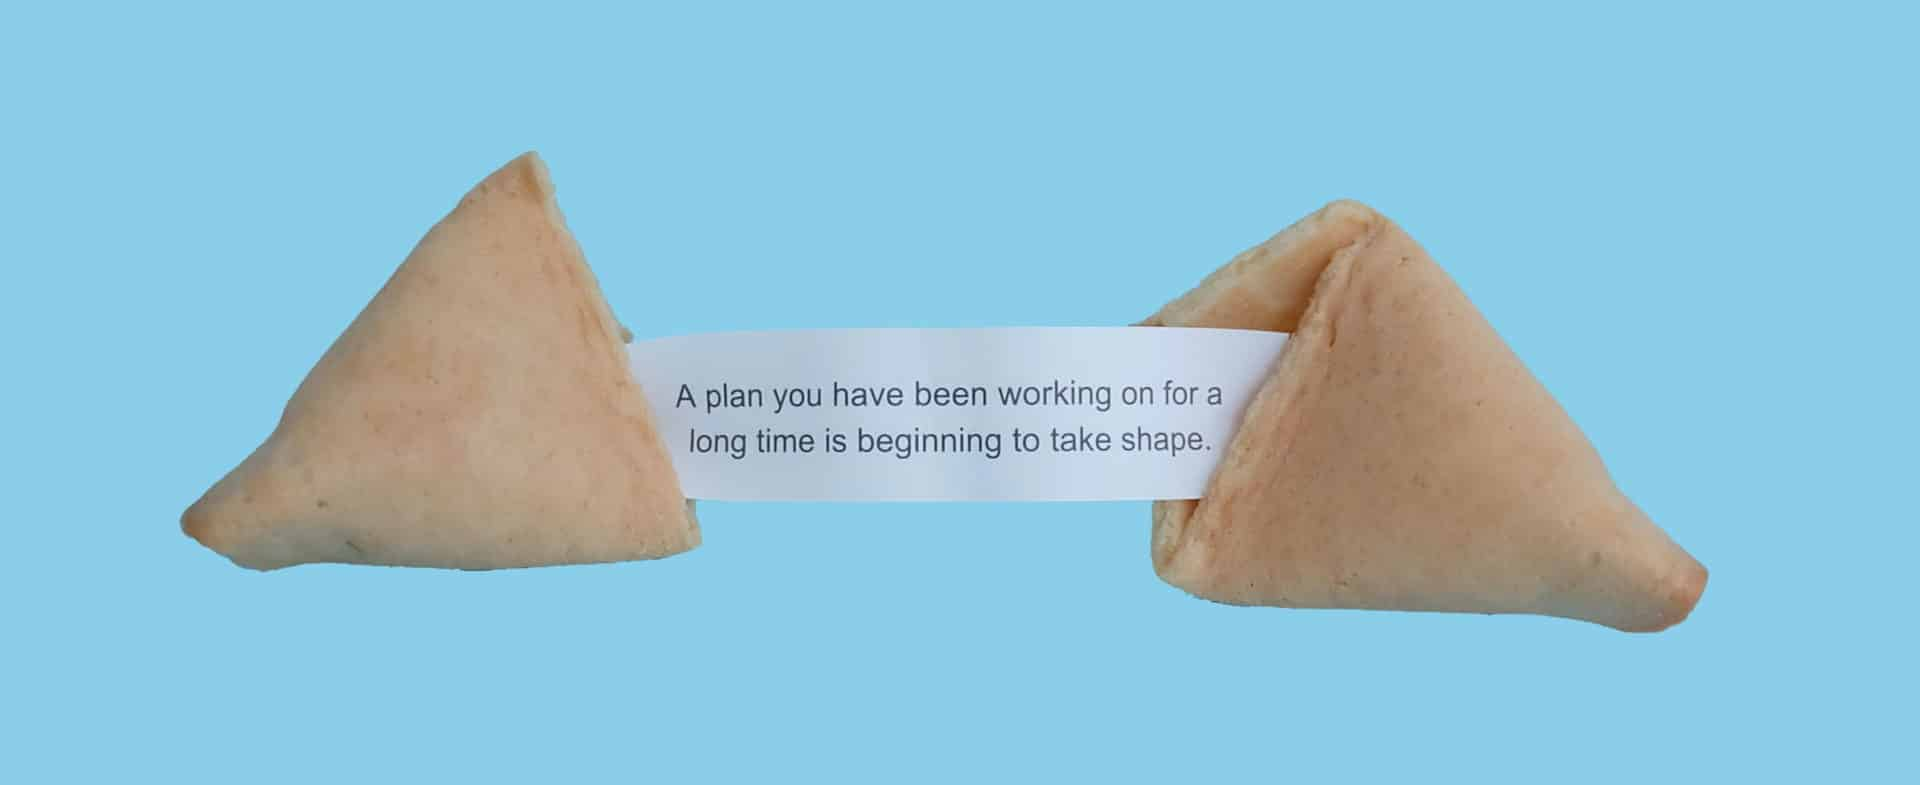 Fortune cookie - A plan you have been working on for a long time is beginning to take shape.